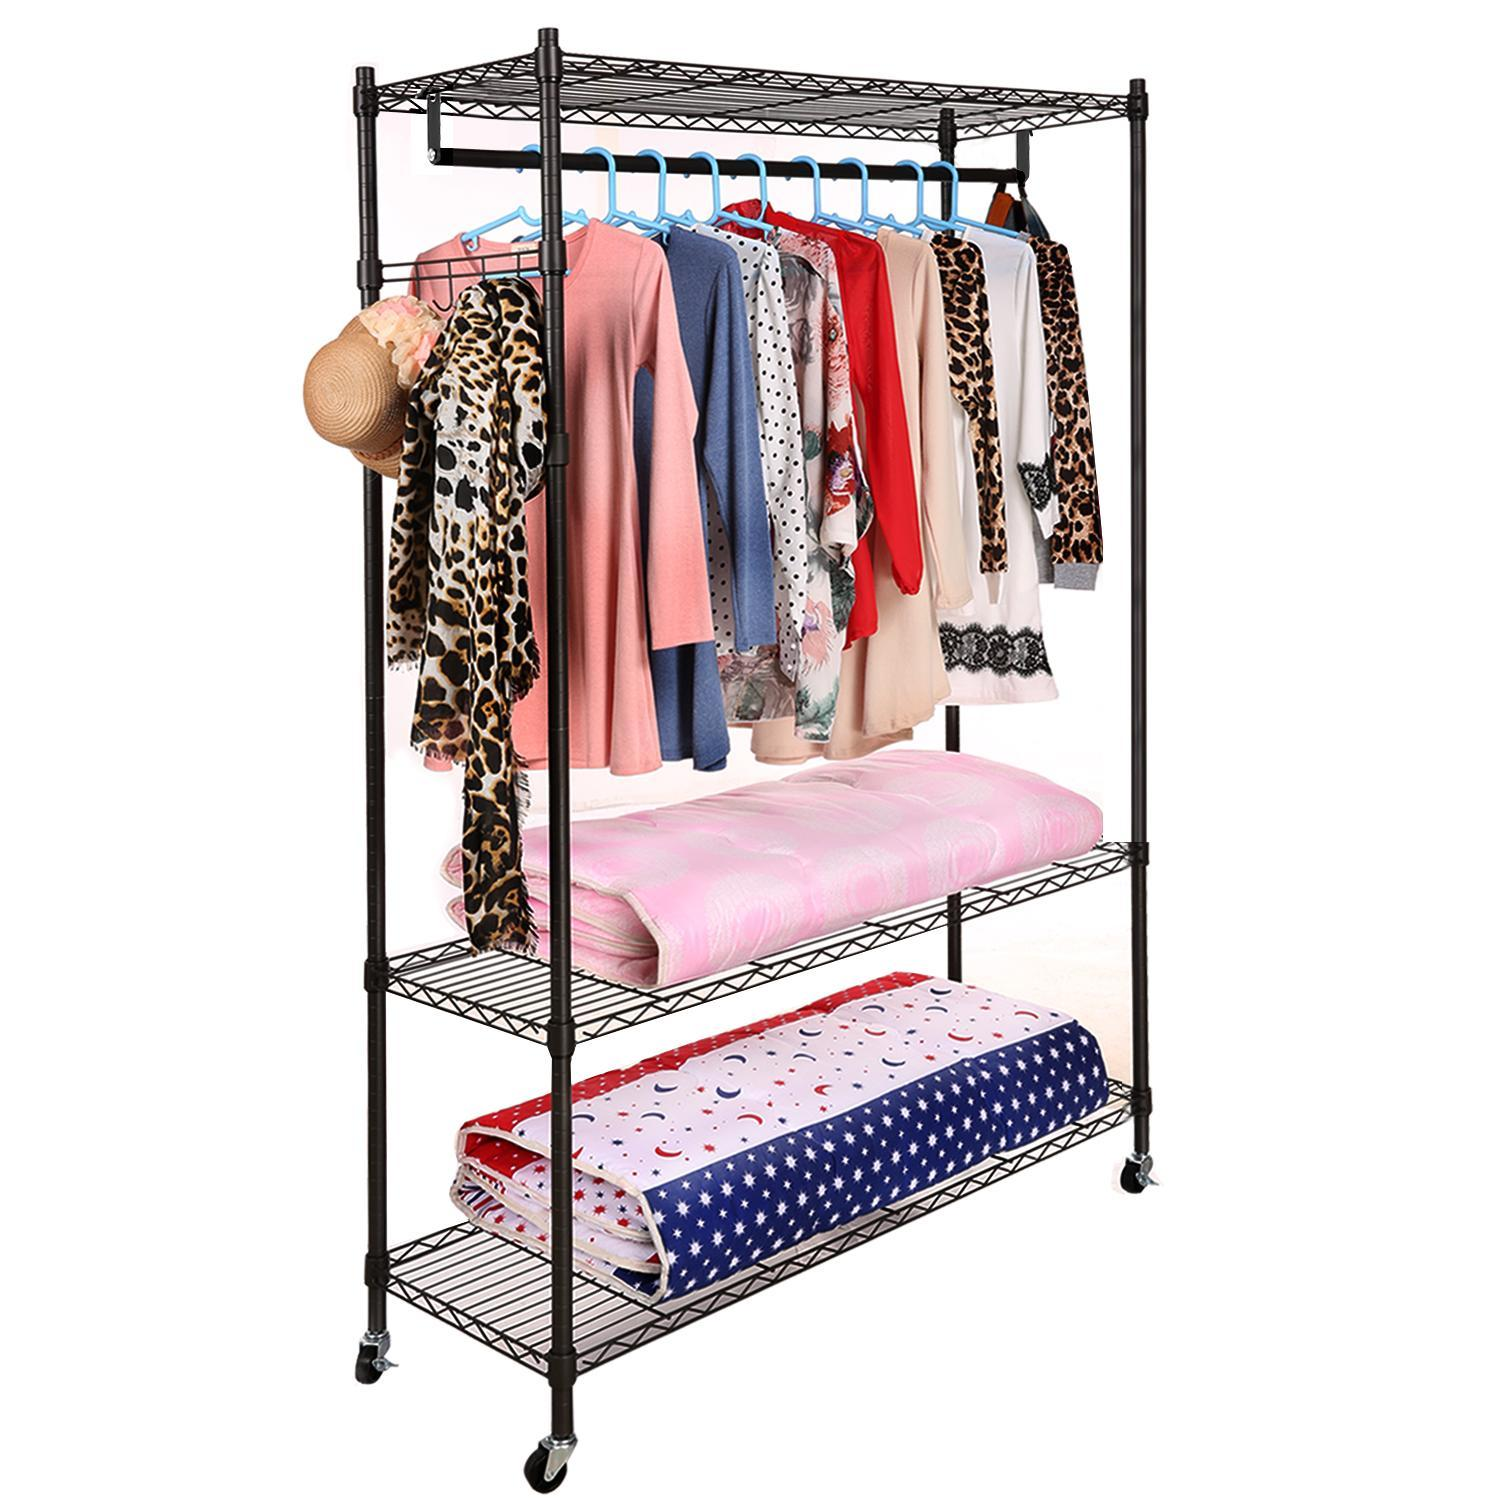 3-Tier Portable Wire Shelving Clothes Shelf Closet Organizer Rack with Side Hook And Wheels SPHP